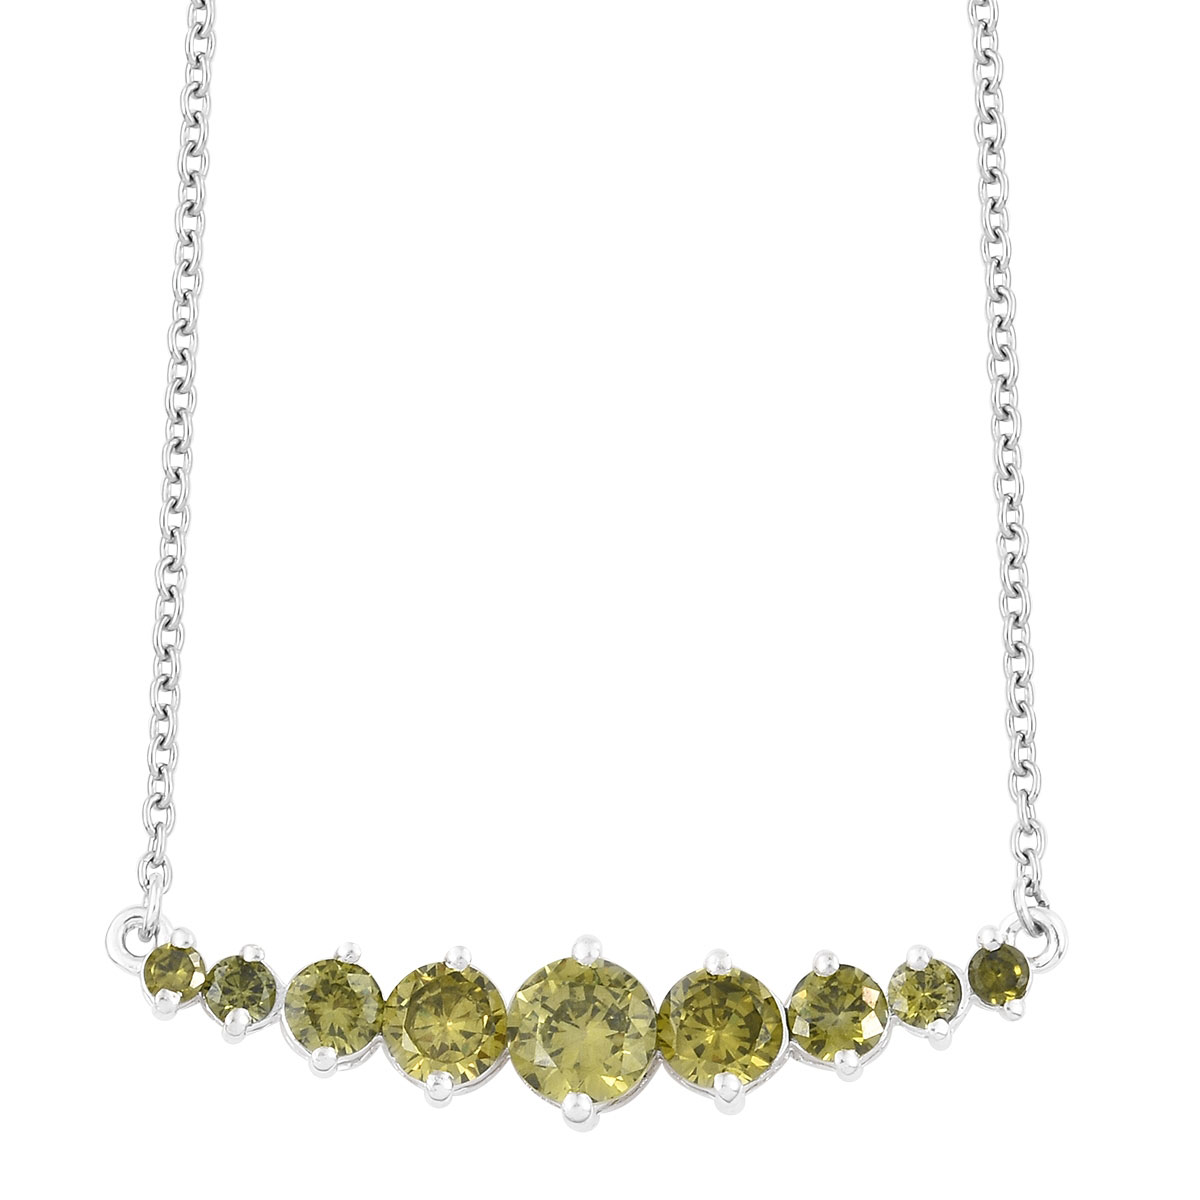 Peridot Pearl Necklace 18 19 Inch AAA 14k Gold filled Sterling Silver Chain